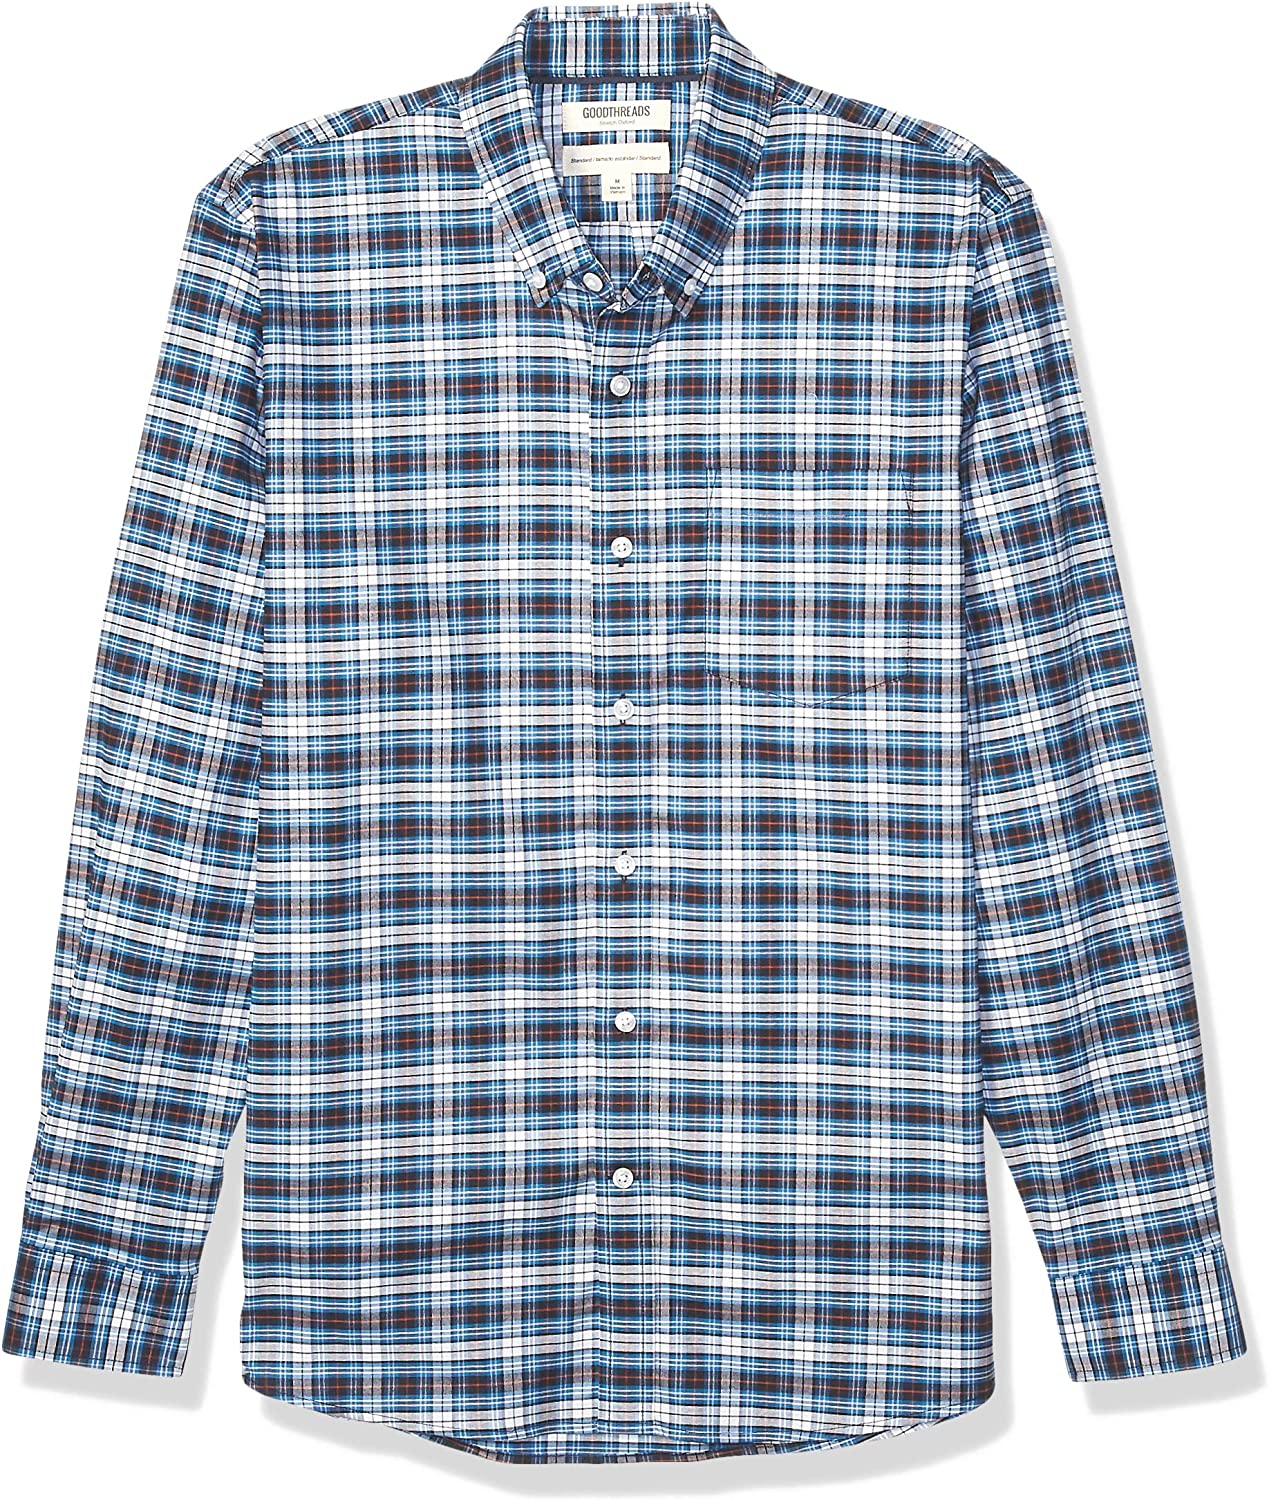 All Hours Goodthreads Mens Standard-fit Long-Sleeve Stretch Oxford Shirt